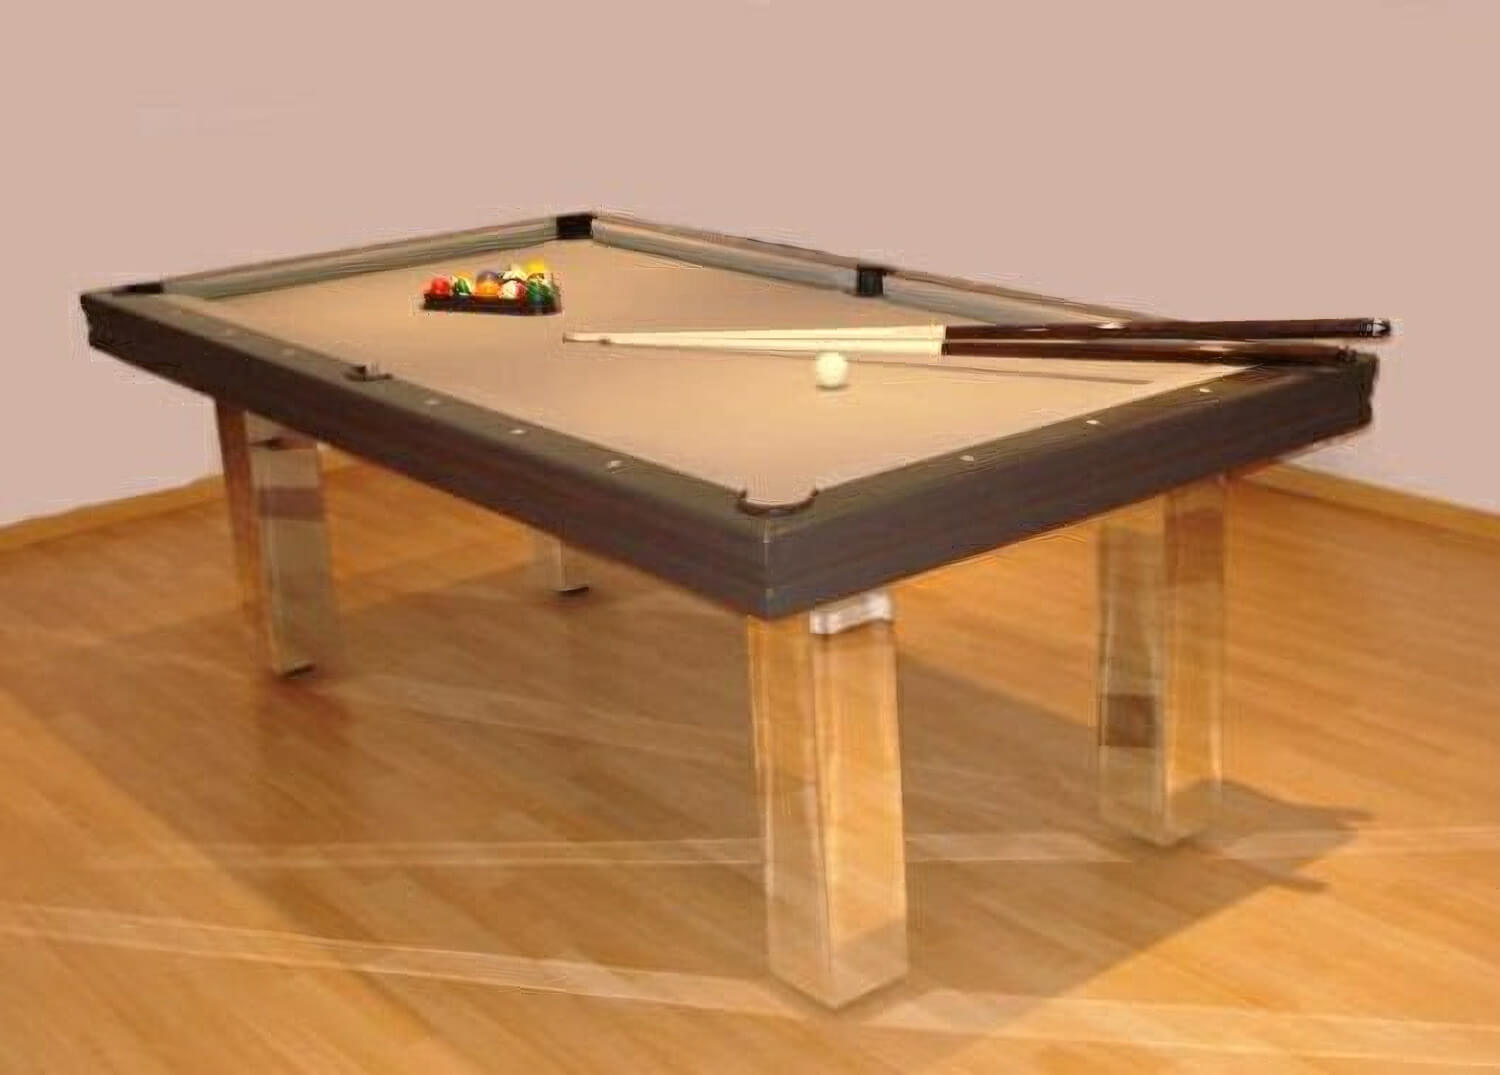 billard toulet miroir snooker table 9 ft 10 ft. Black Bedroom Furniture Sets. Home Design Ideas